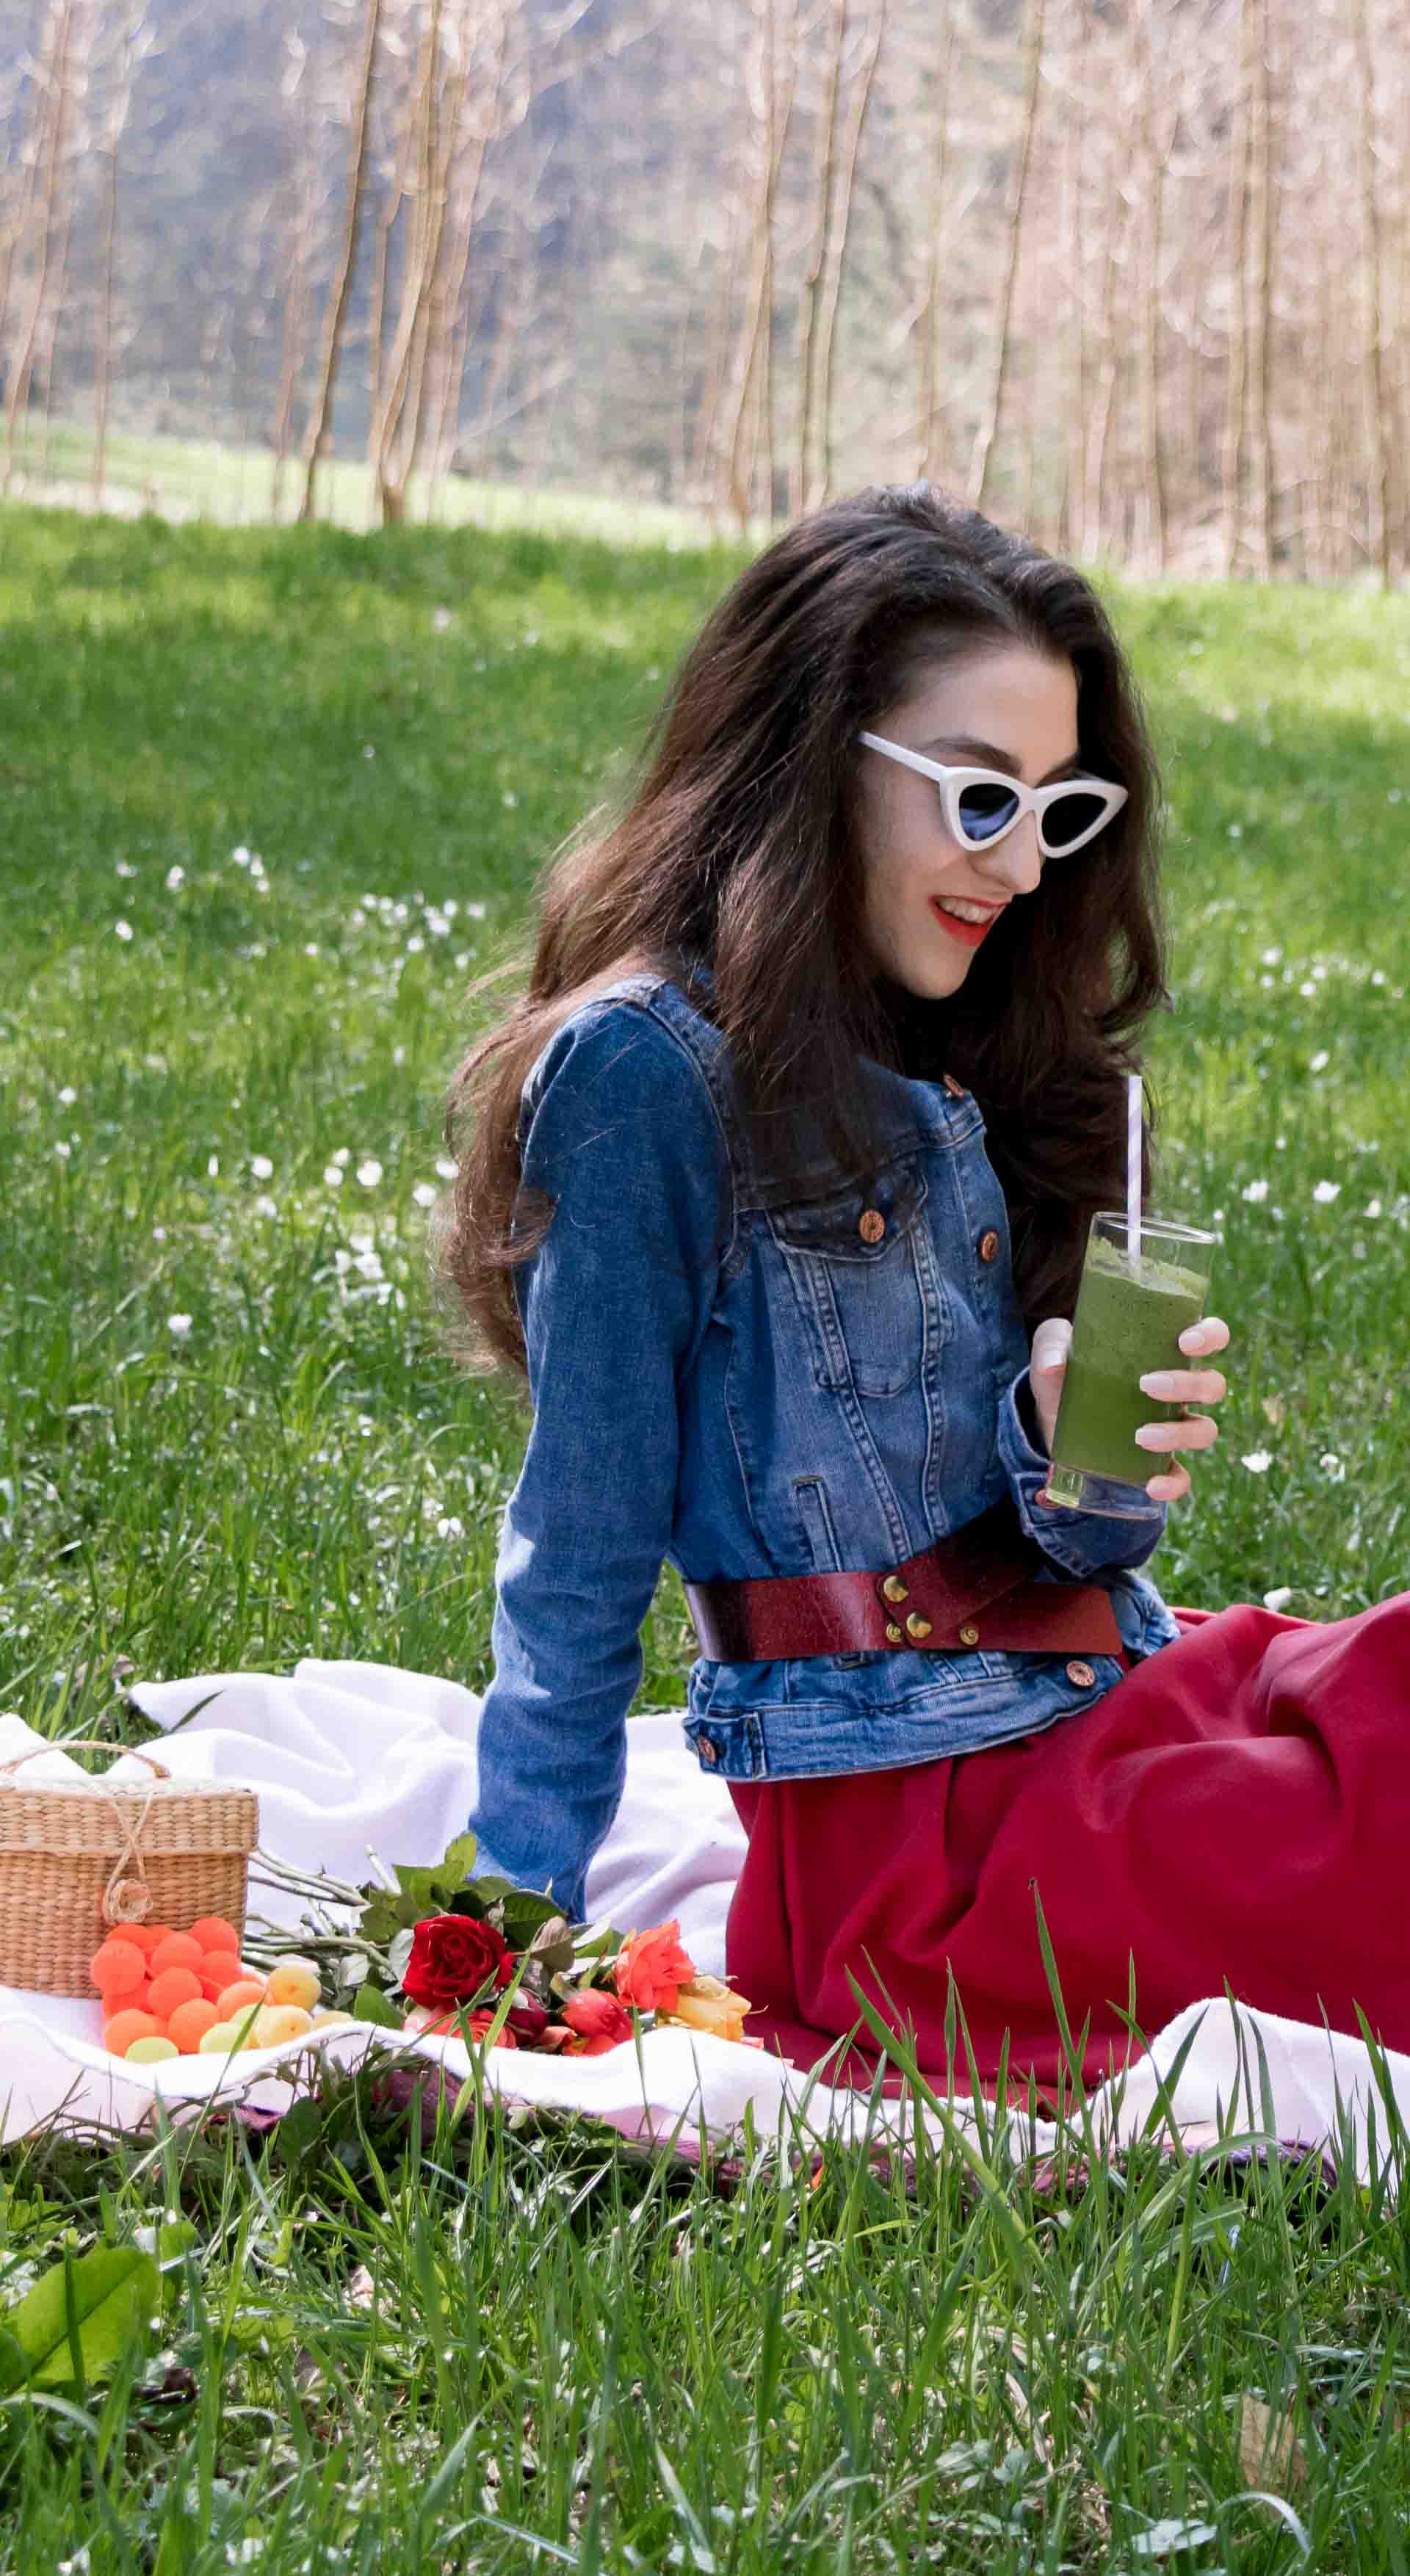 Veronika Lipar Fashion Blogger of Brunette from Wall Street wearing red dress, dangling belt, blue denim jacket, white socks and white pumps, Sam Eldeman x Le Specs, white lolita cat-eye sunglasses, Nannacay raffia basket bag while drinking smoothie on the pink picnic blanket